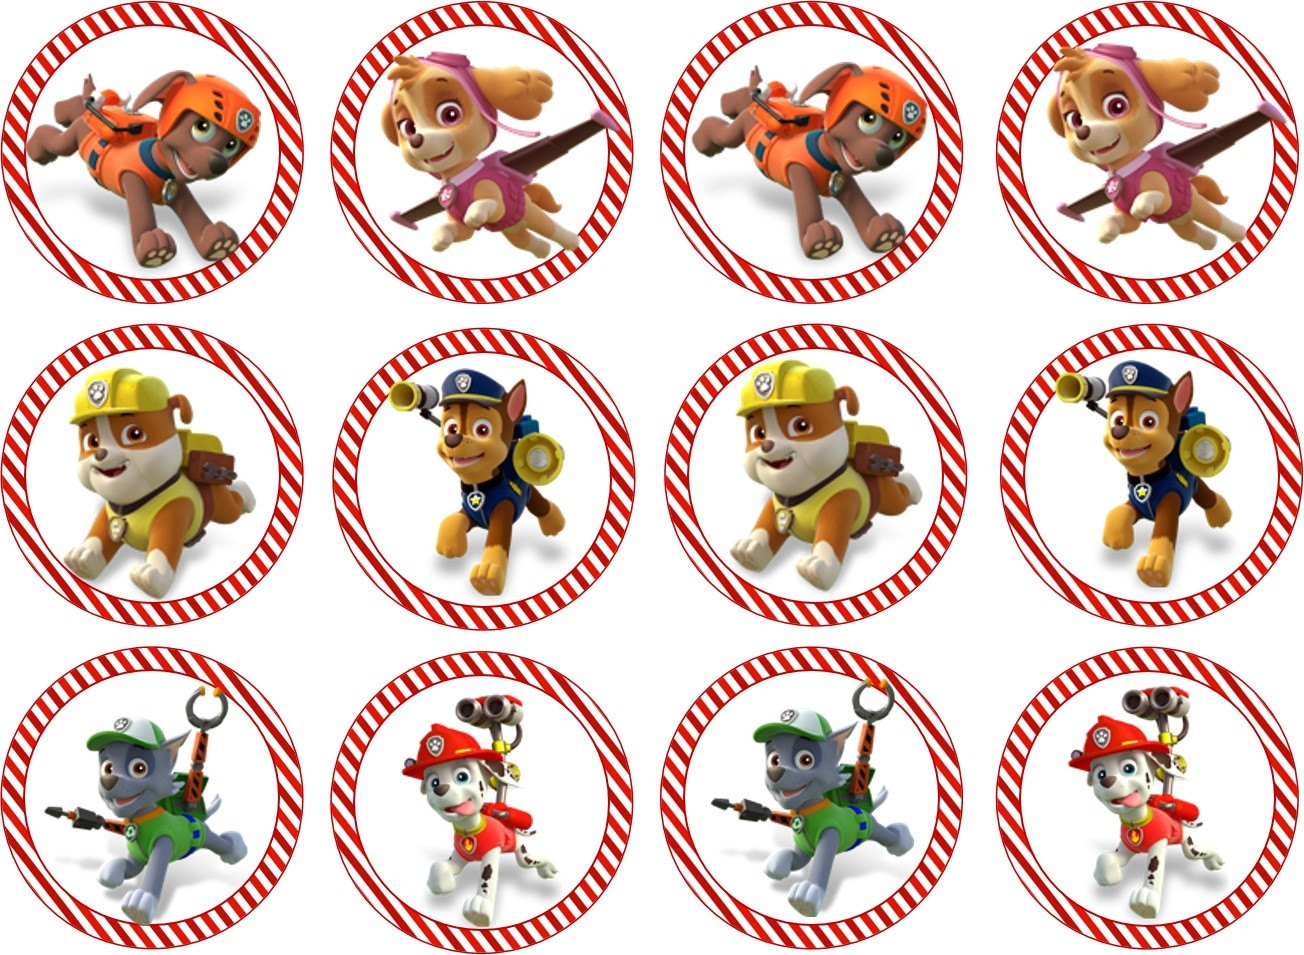 Paw Patrol Printable Cupcake Toppers By LeilaBugs On Etsy